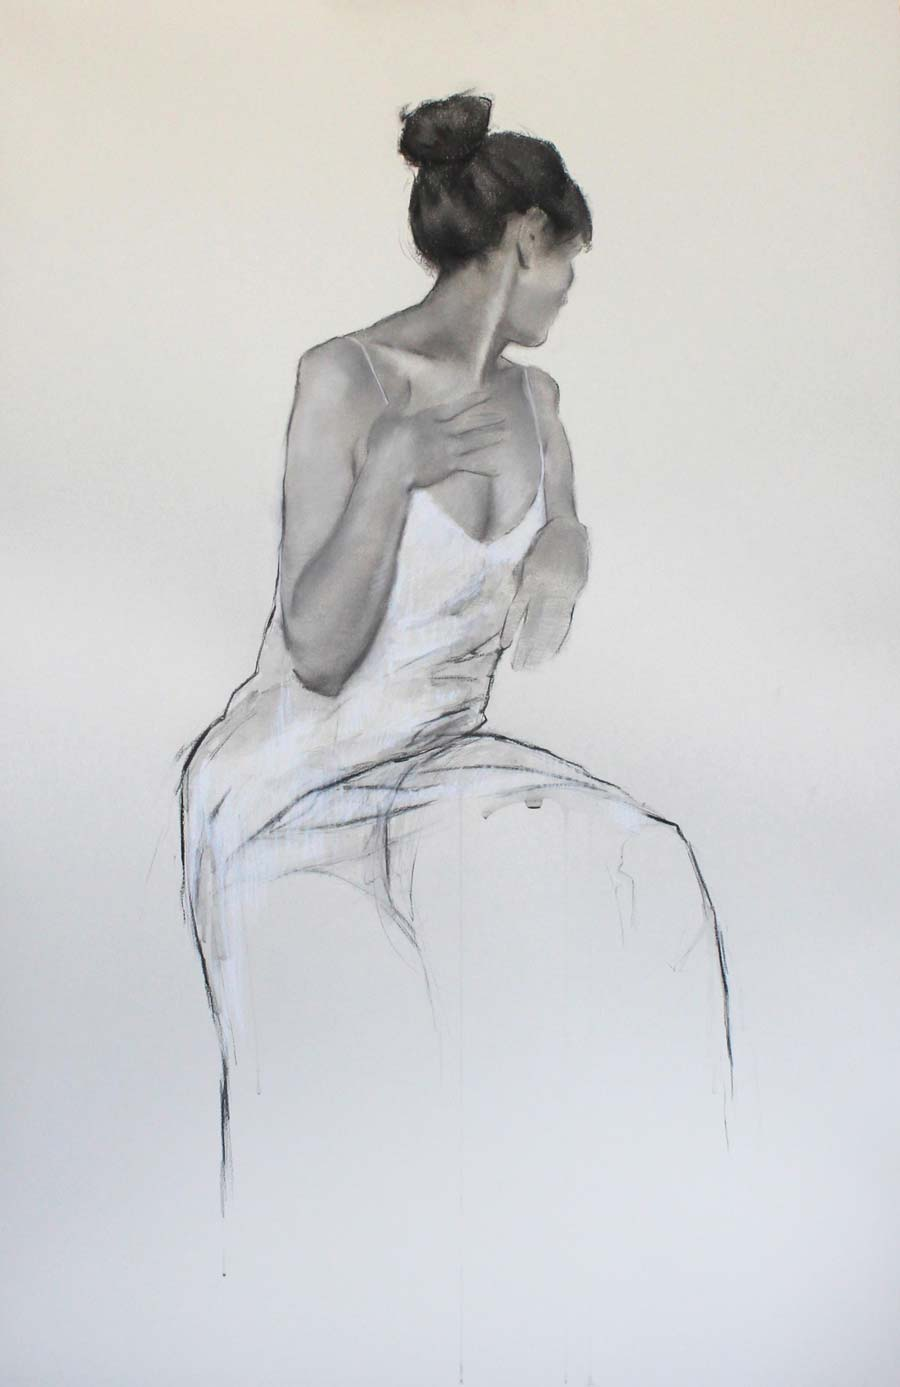 Buy 'Grace' an original charcoal drawing by India Amos at The Biscuit Factory, Newcastle Upon Tyne.